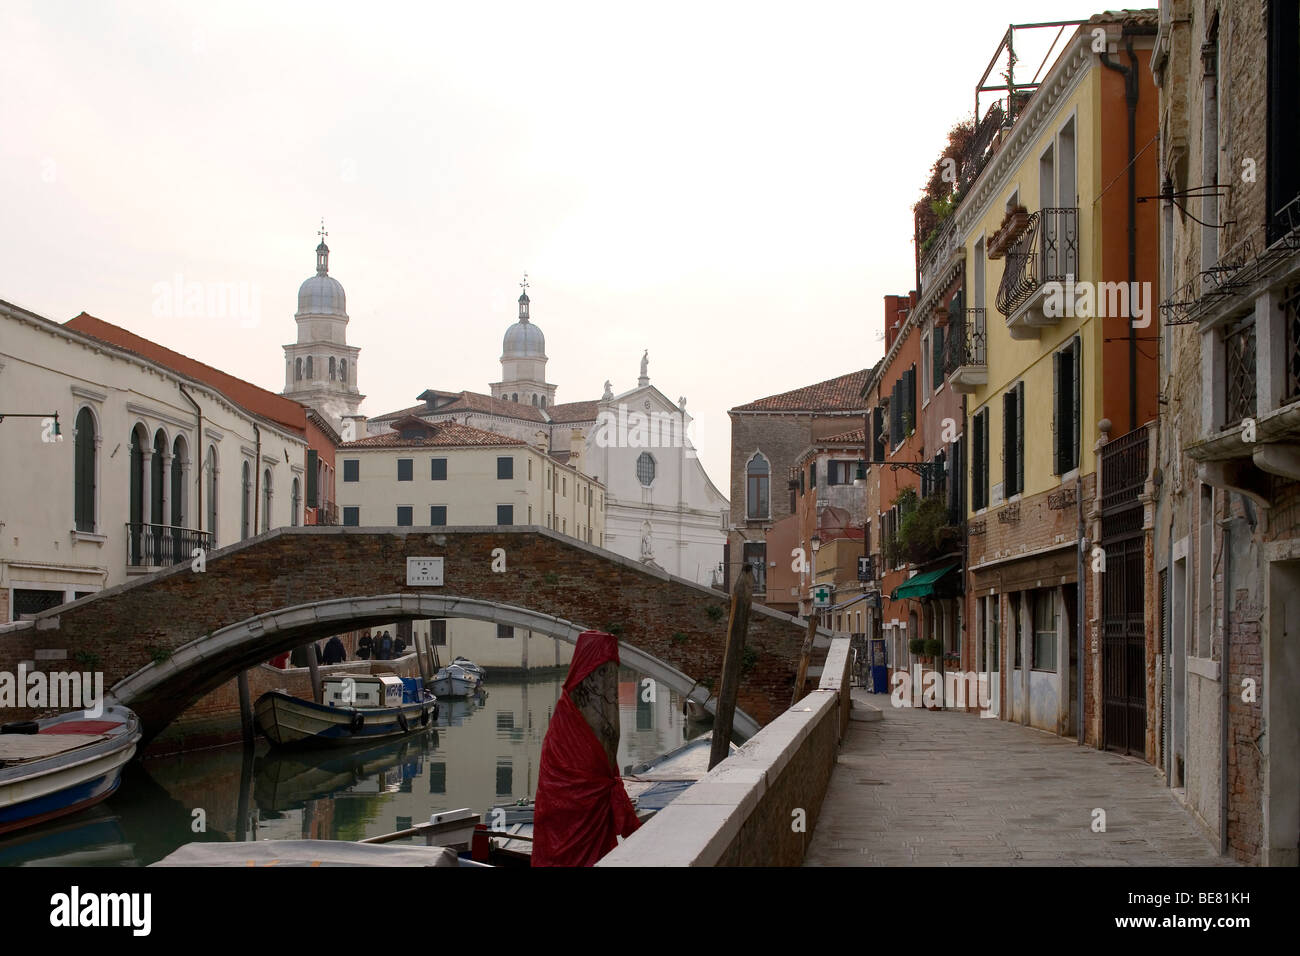 Rio de L' anzolo, in the background Chiesa di S. Raffaele, Venice, Italy, Europe - Stock Image